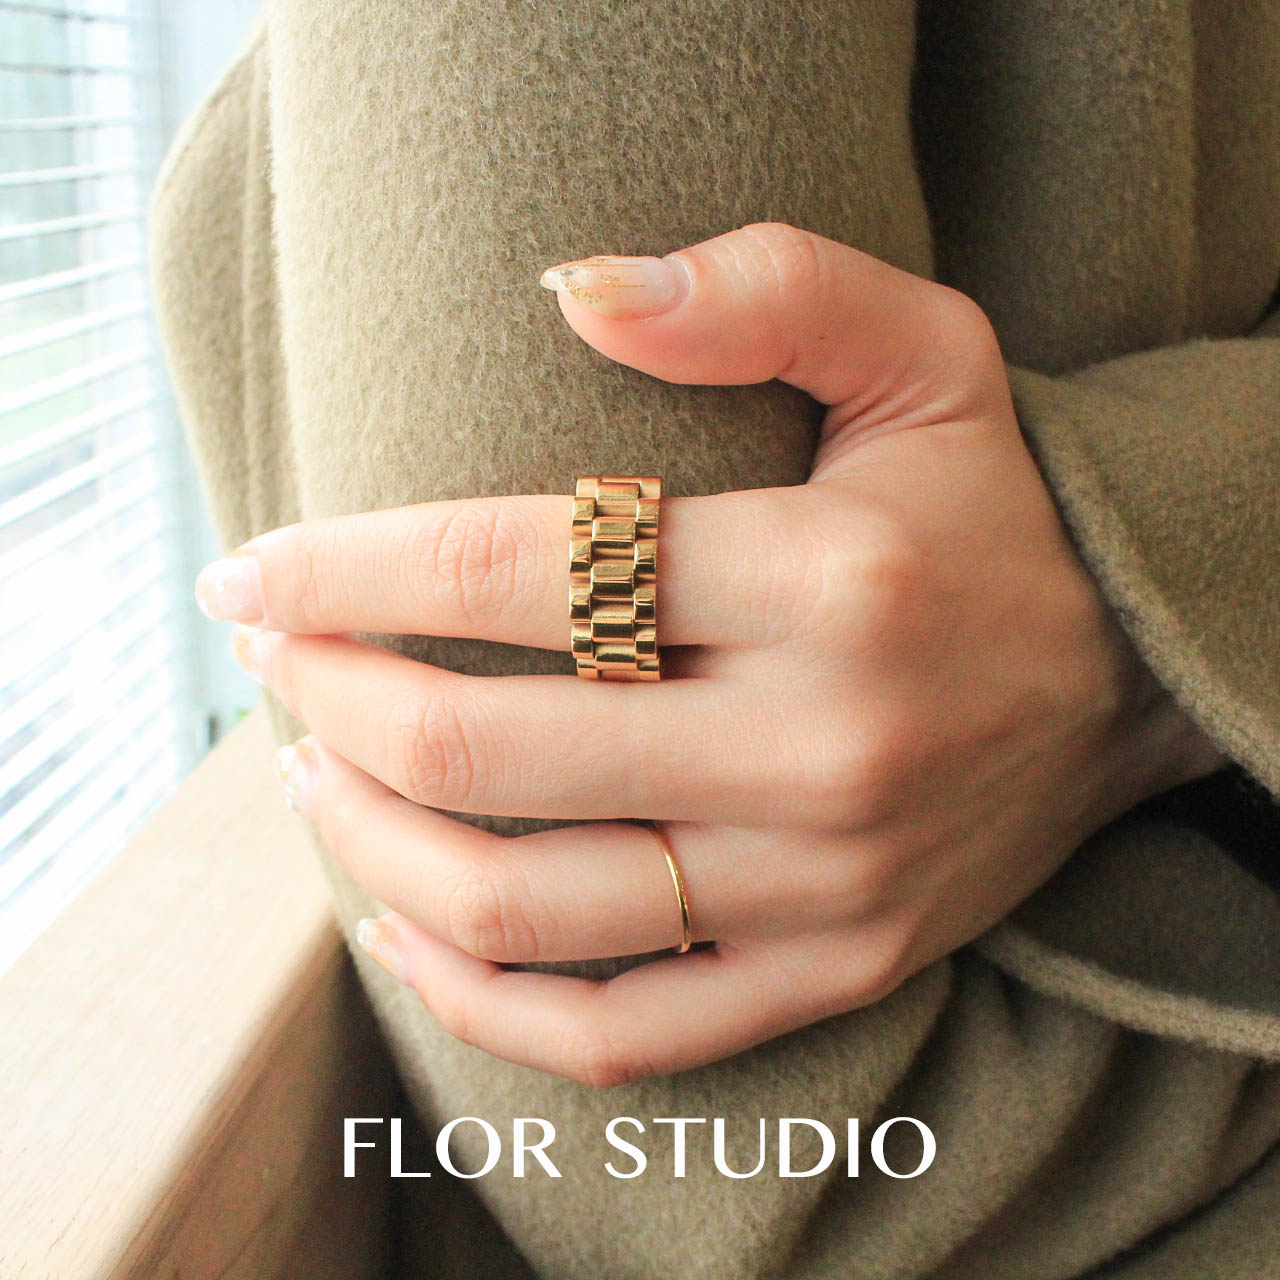 Flor design, a small number of European and American simple personalized rings, superimposed ins bracelets and rings, lovers package mail